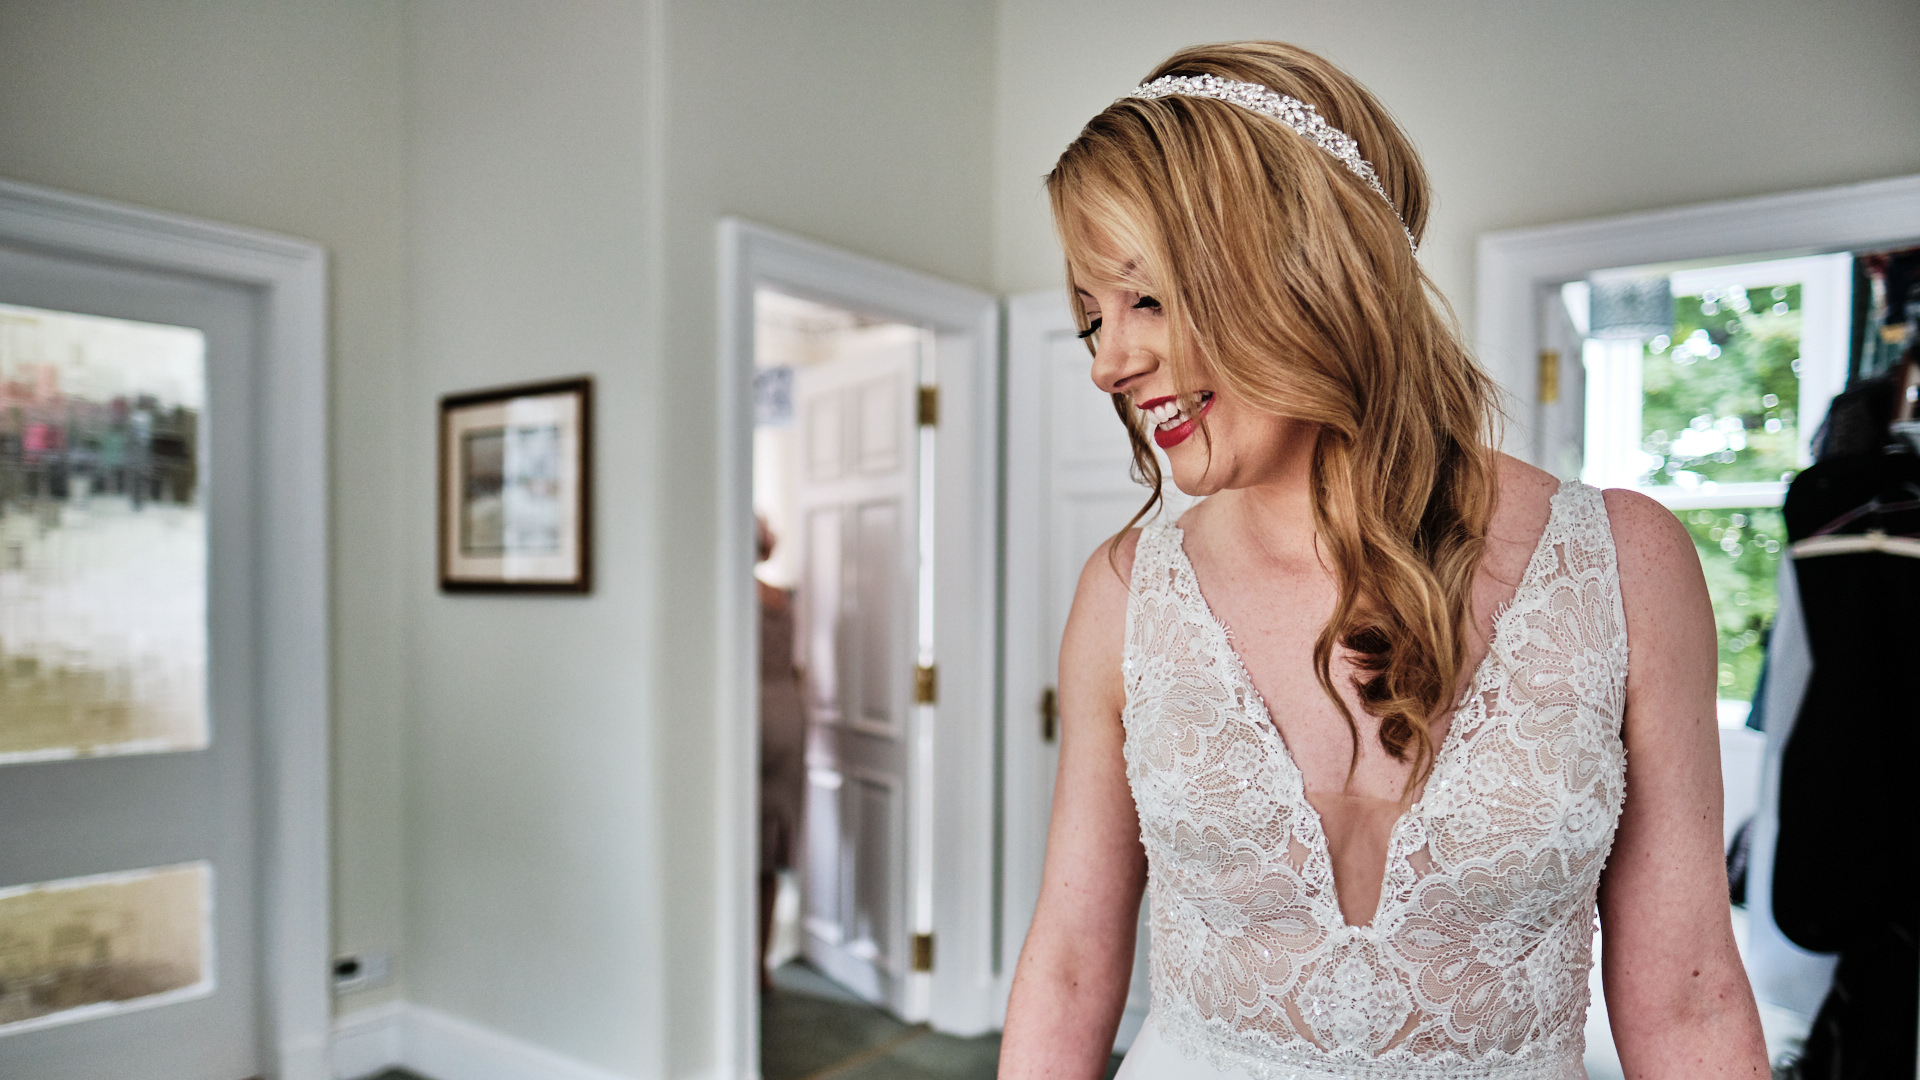 colour photograph of a bride smiling at her dad as he comes upstair to see her for the first time in her wedding dress